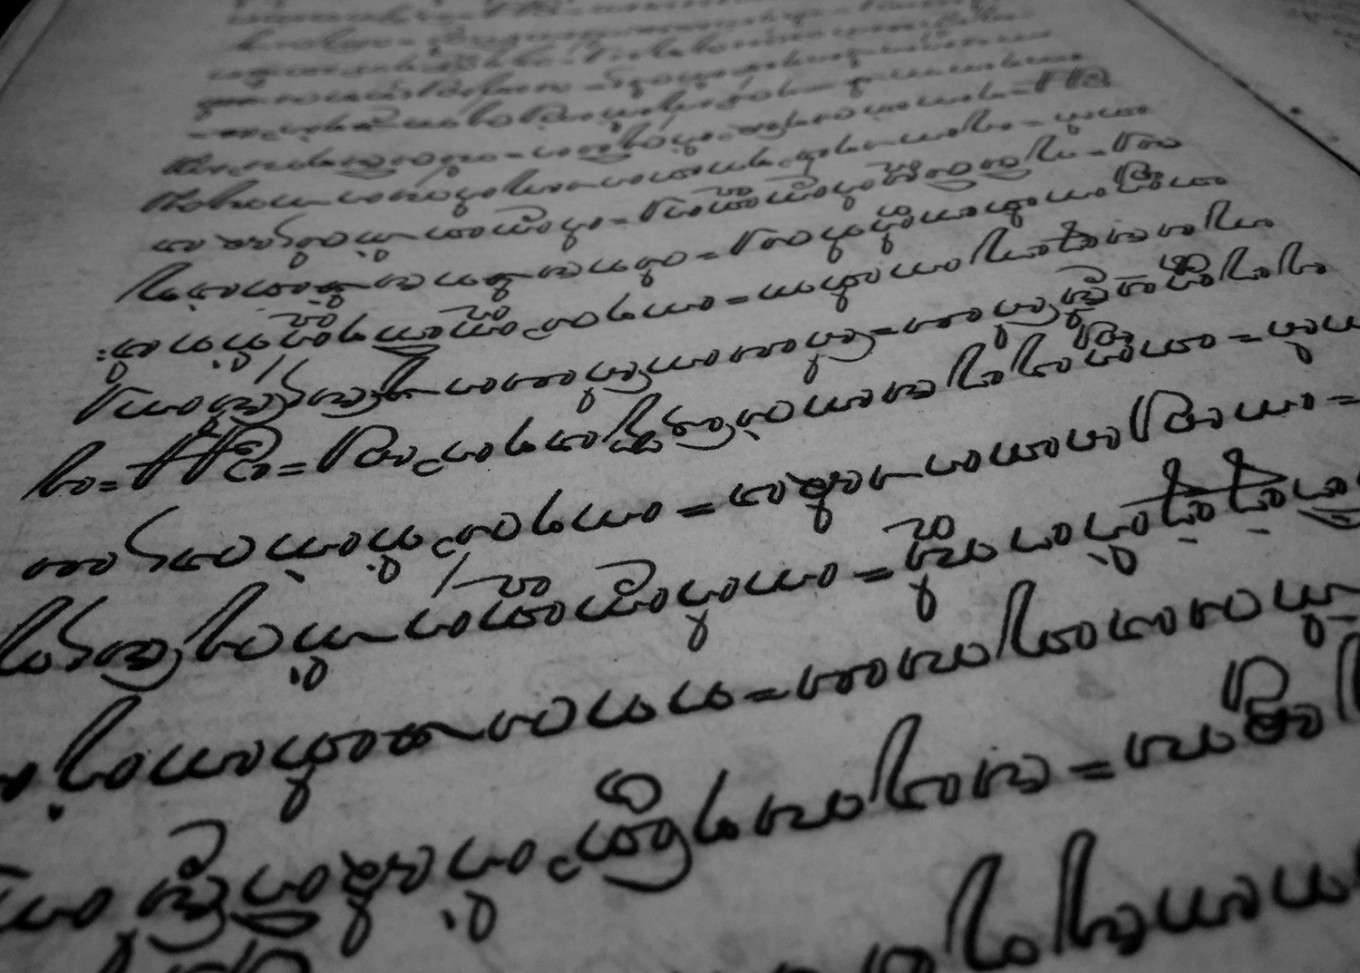 From 6,000 manuscripts at the foundation, most are written in Javanese script. JP/Ganug Nugroho Adi